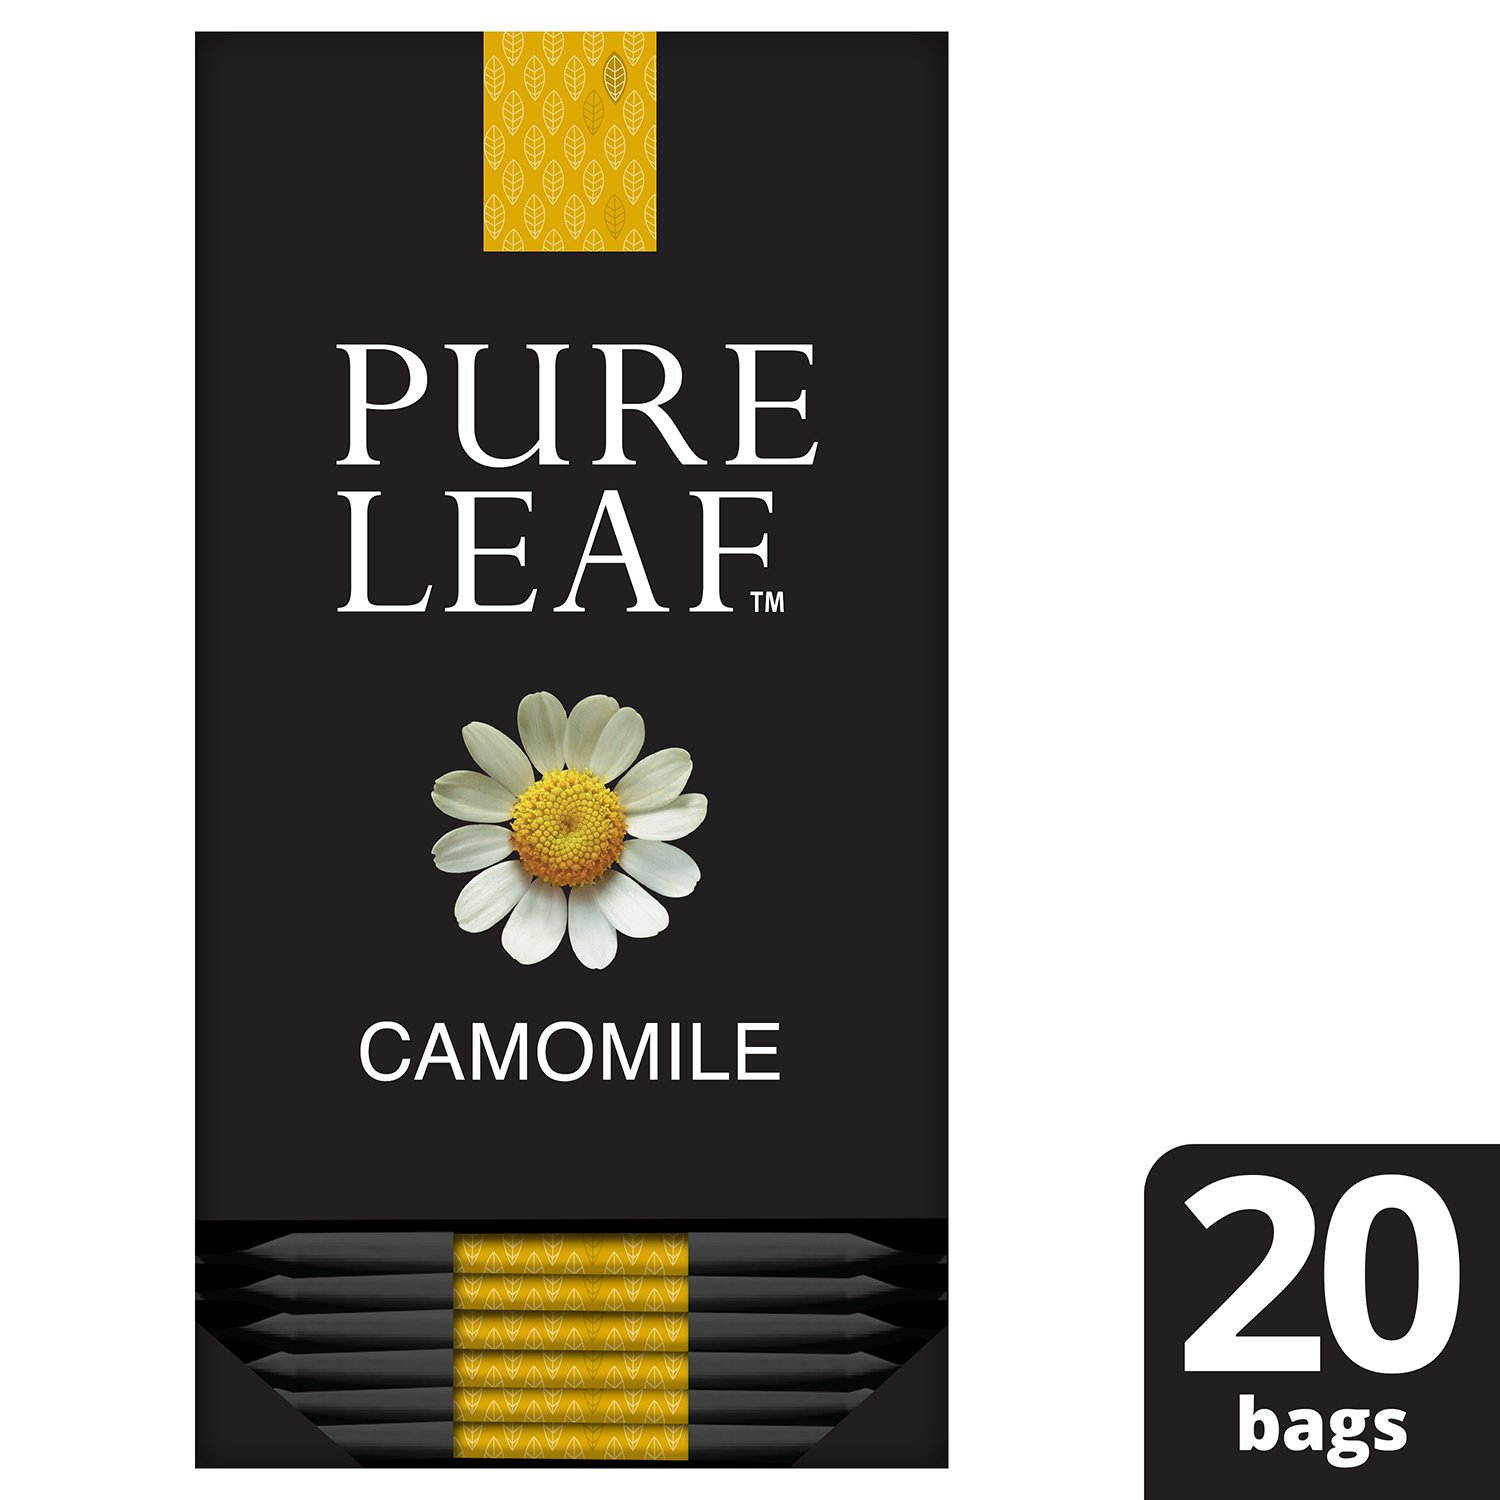 Pure Leaf Camomile Herbal Tea -